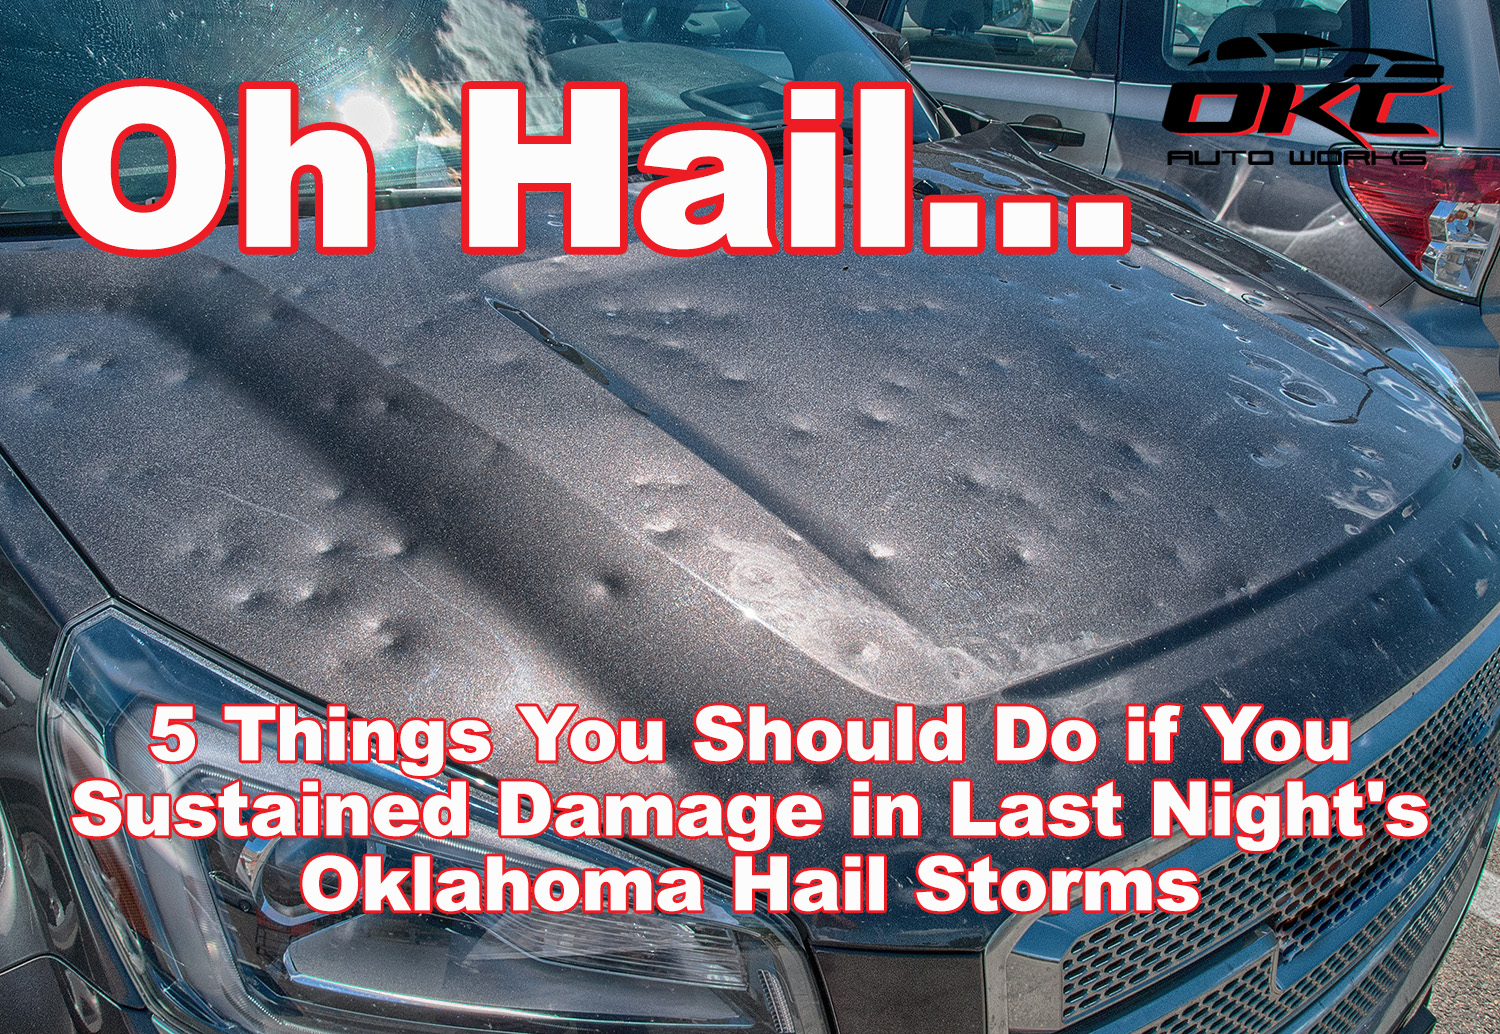 OKLAHOMA HAIL STORMS, hail damage, pdr, paintless dent repair, cat claims, repair hail damage, repair storm damage